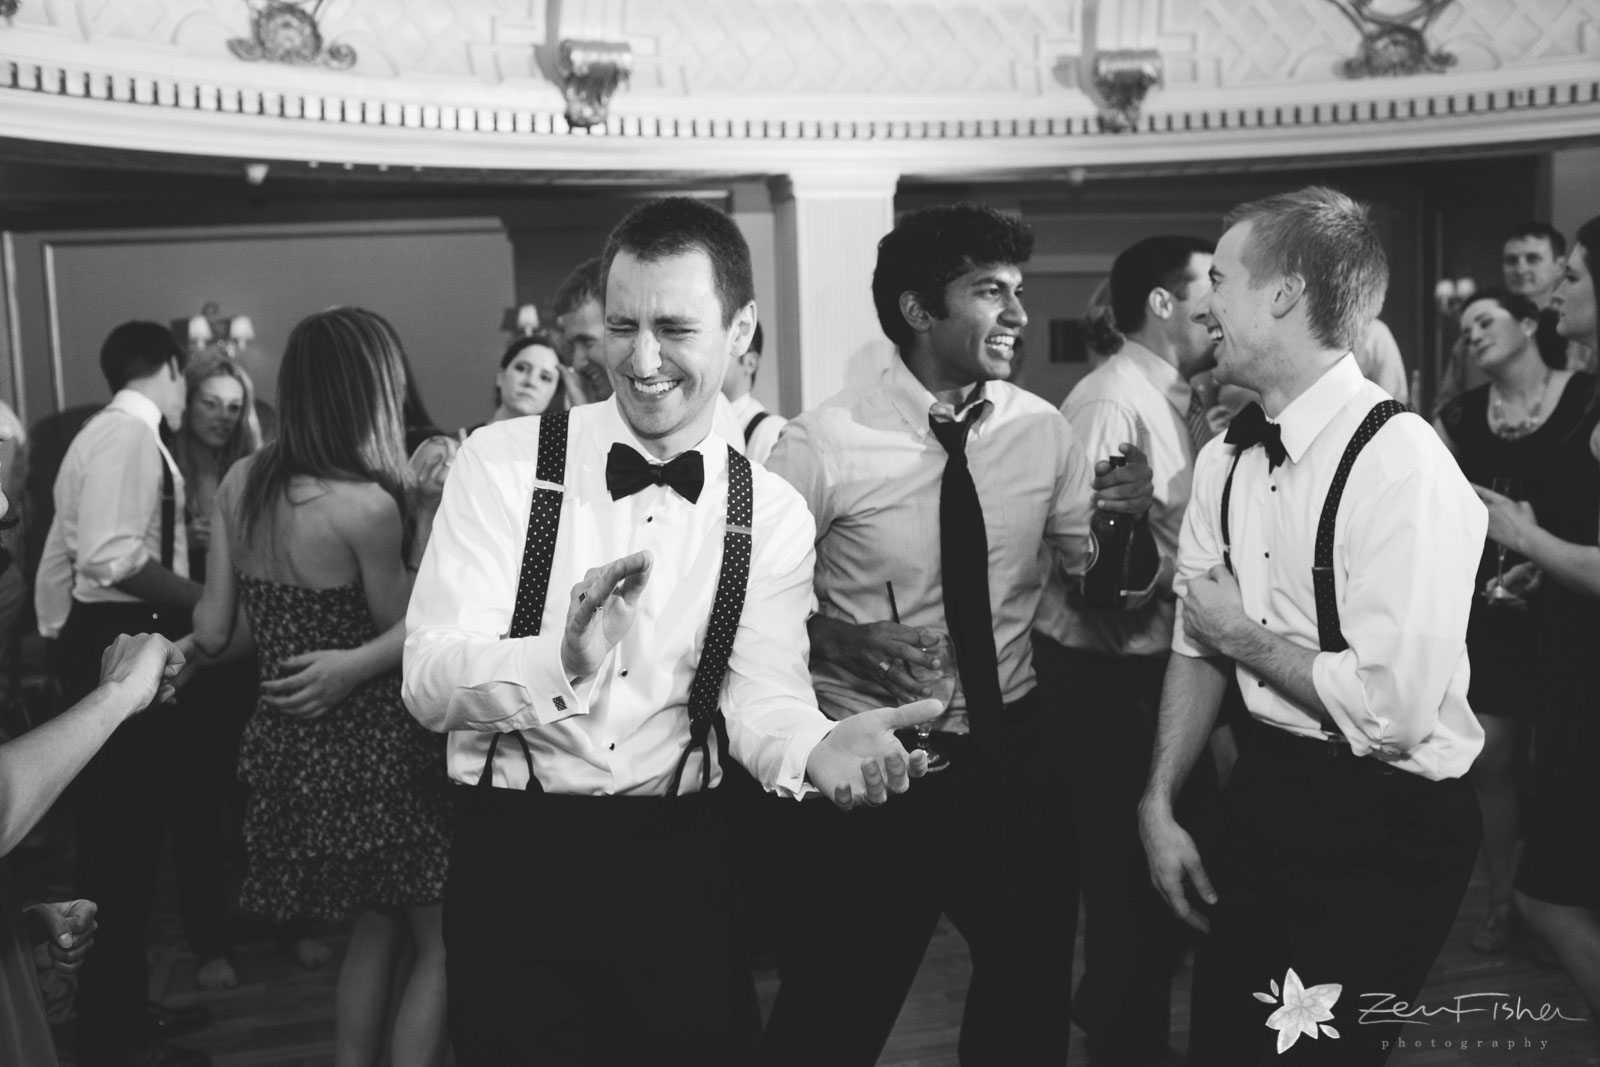 Groom having fun with his buddies and cracking up on the dance floor.